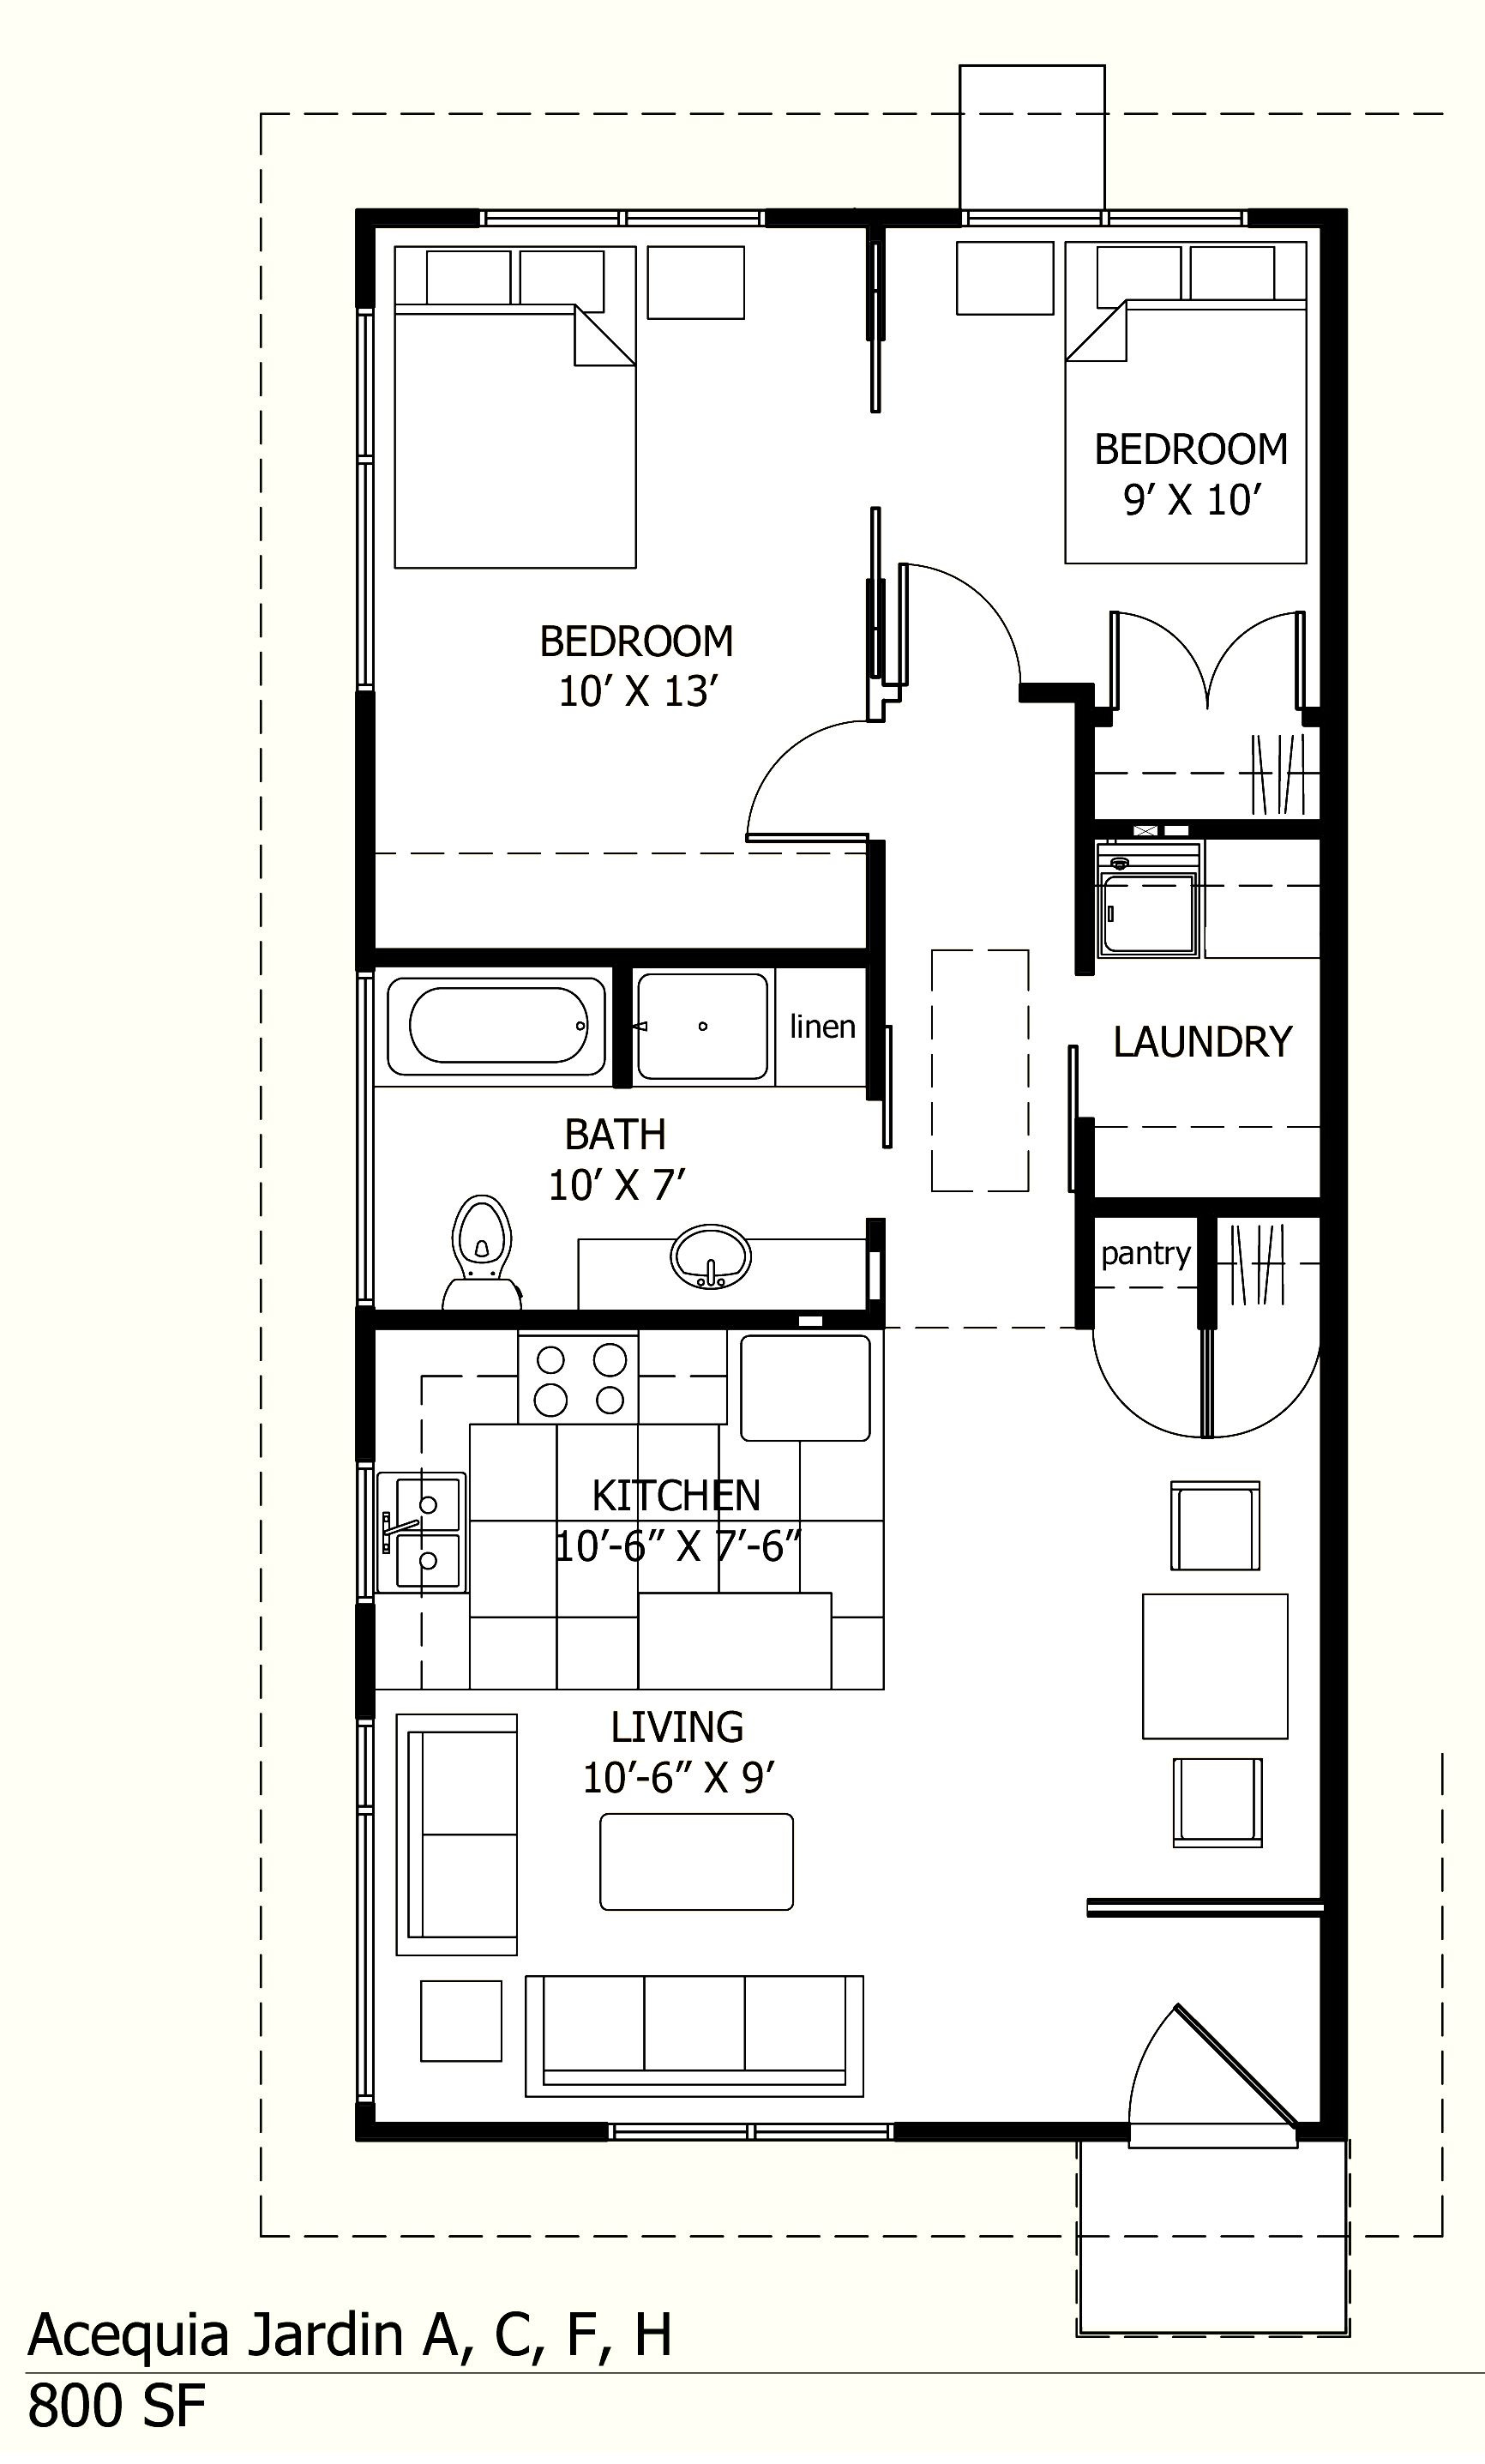 House Plans for Small Homes Beautiful 800 Sq Ft